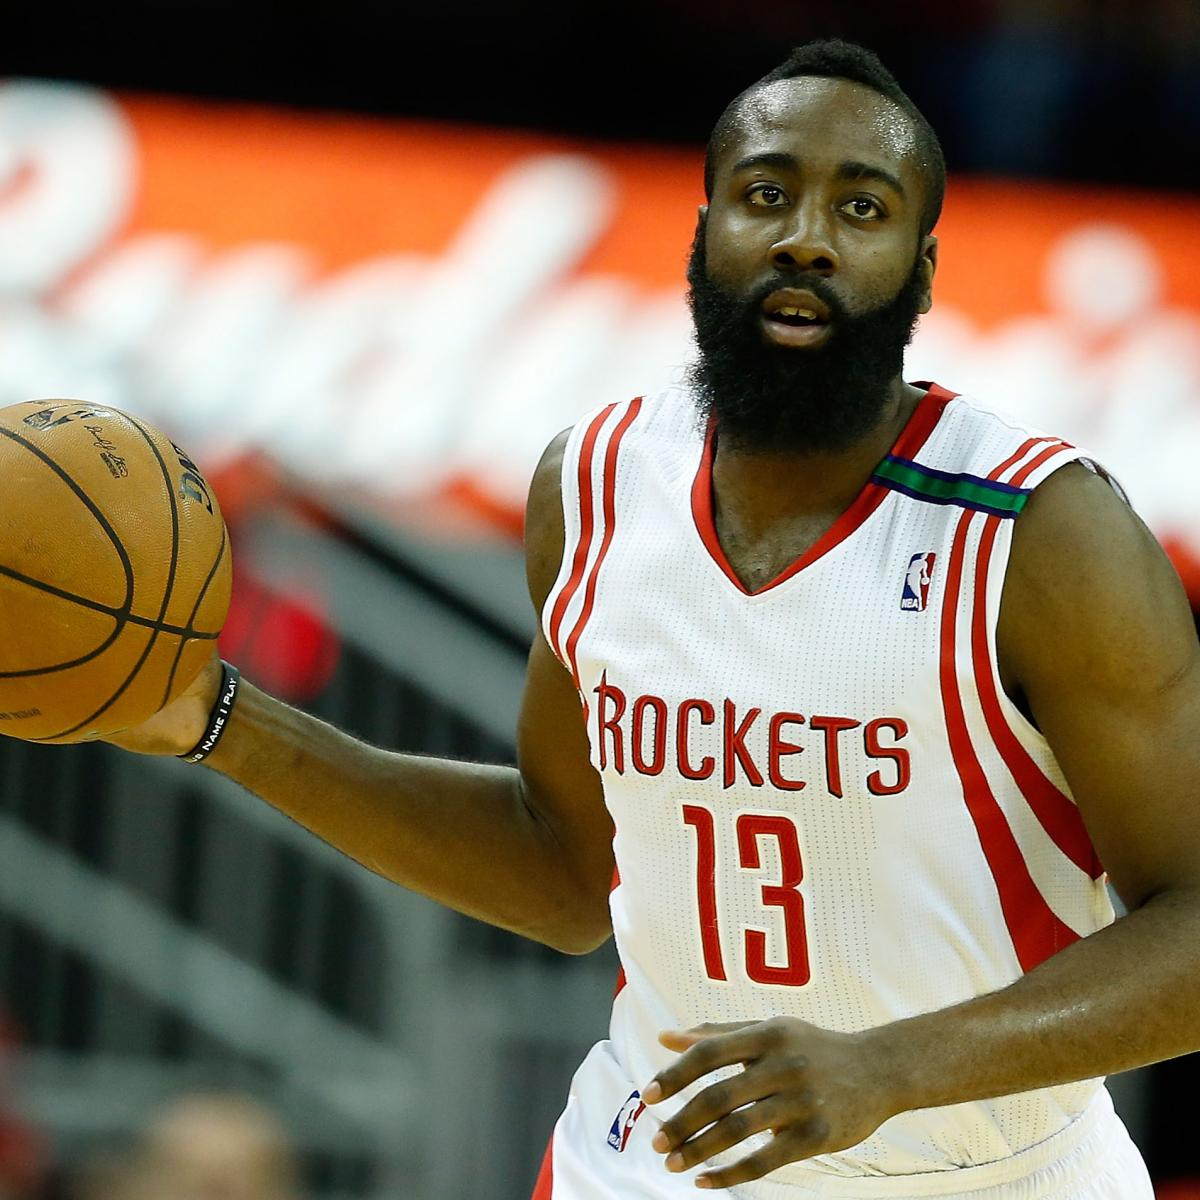 James Harden Free Agency: James Harden's Success Makes Houston A Landing Spot For